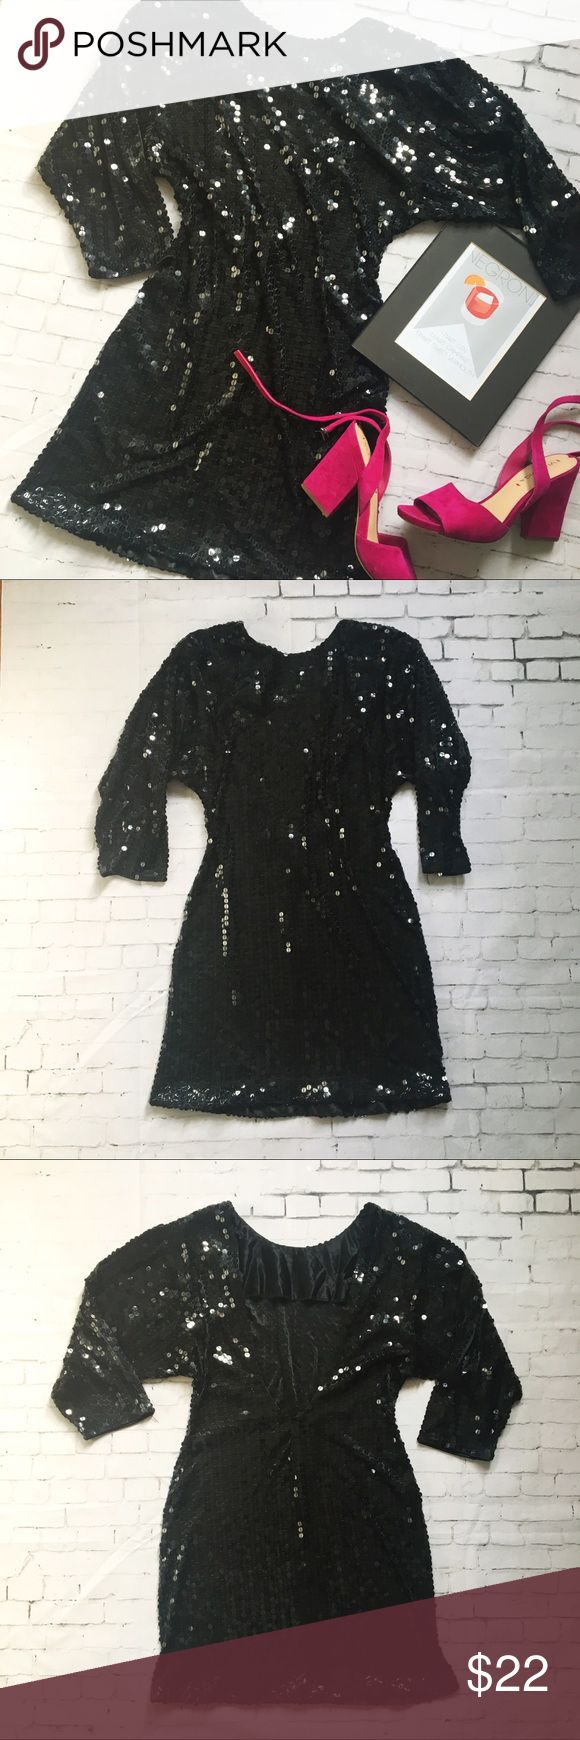 """Show max classic 80s cocktail sequin dress Vintage 1980s show max originals silk and sequin cocktail dress  Mini skirt fitted style with 3/4 wide sleeves and low rise back - no shoulder pads  -in very good condition- - bust 19"""" - waist 15"""" - sleeves 17"""" - - size medium - Dresses Mini"""